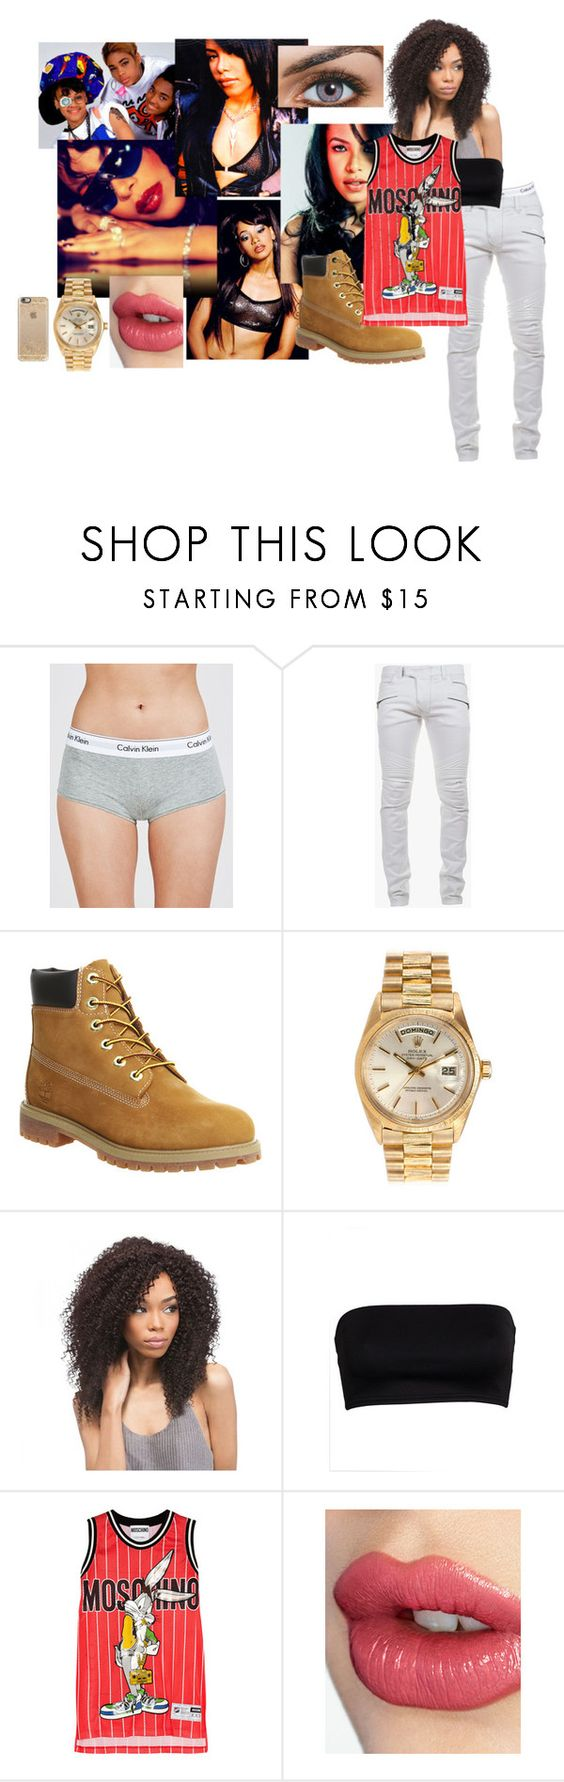 Tomboy Tabitha by urdreamgirl on Polyvore featuring Moschino, Calvin Klein Underwear, Timberland, Rolex, Casetify, Balmain and Charlotte Tilbury